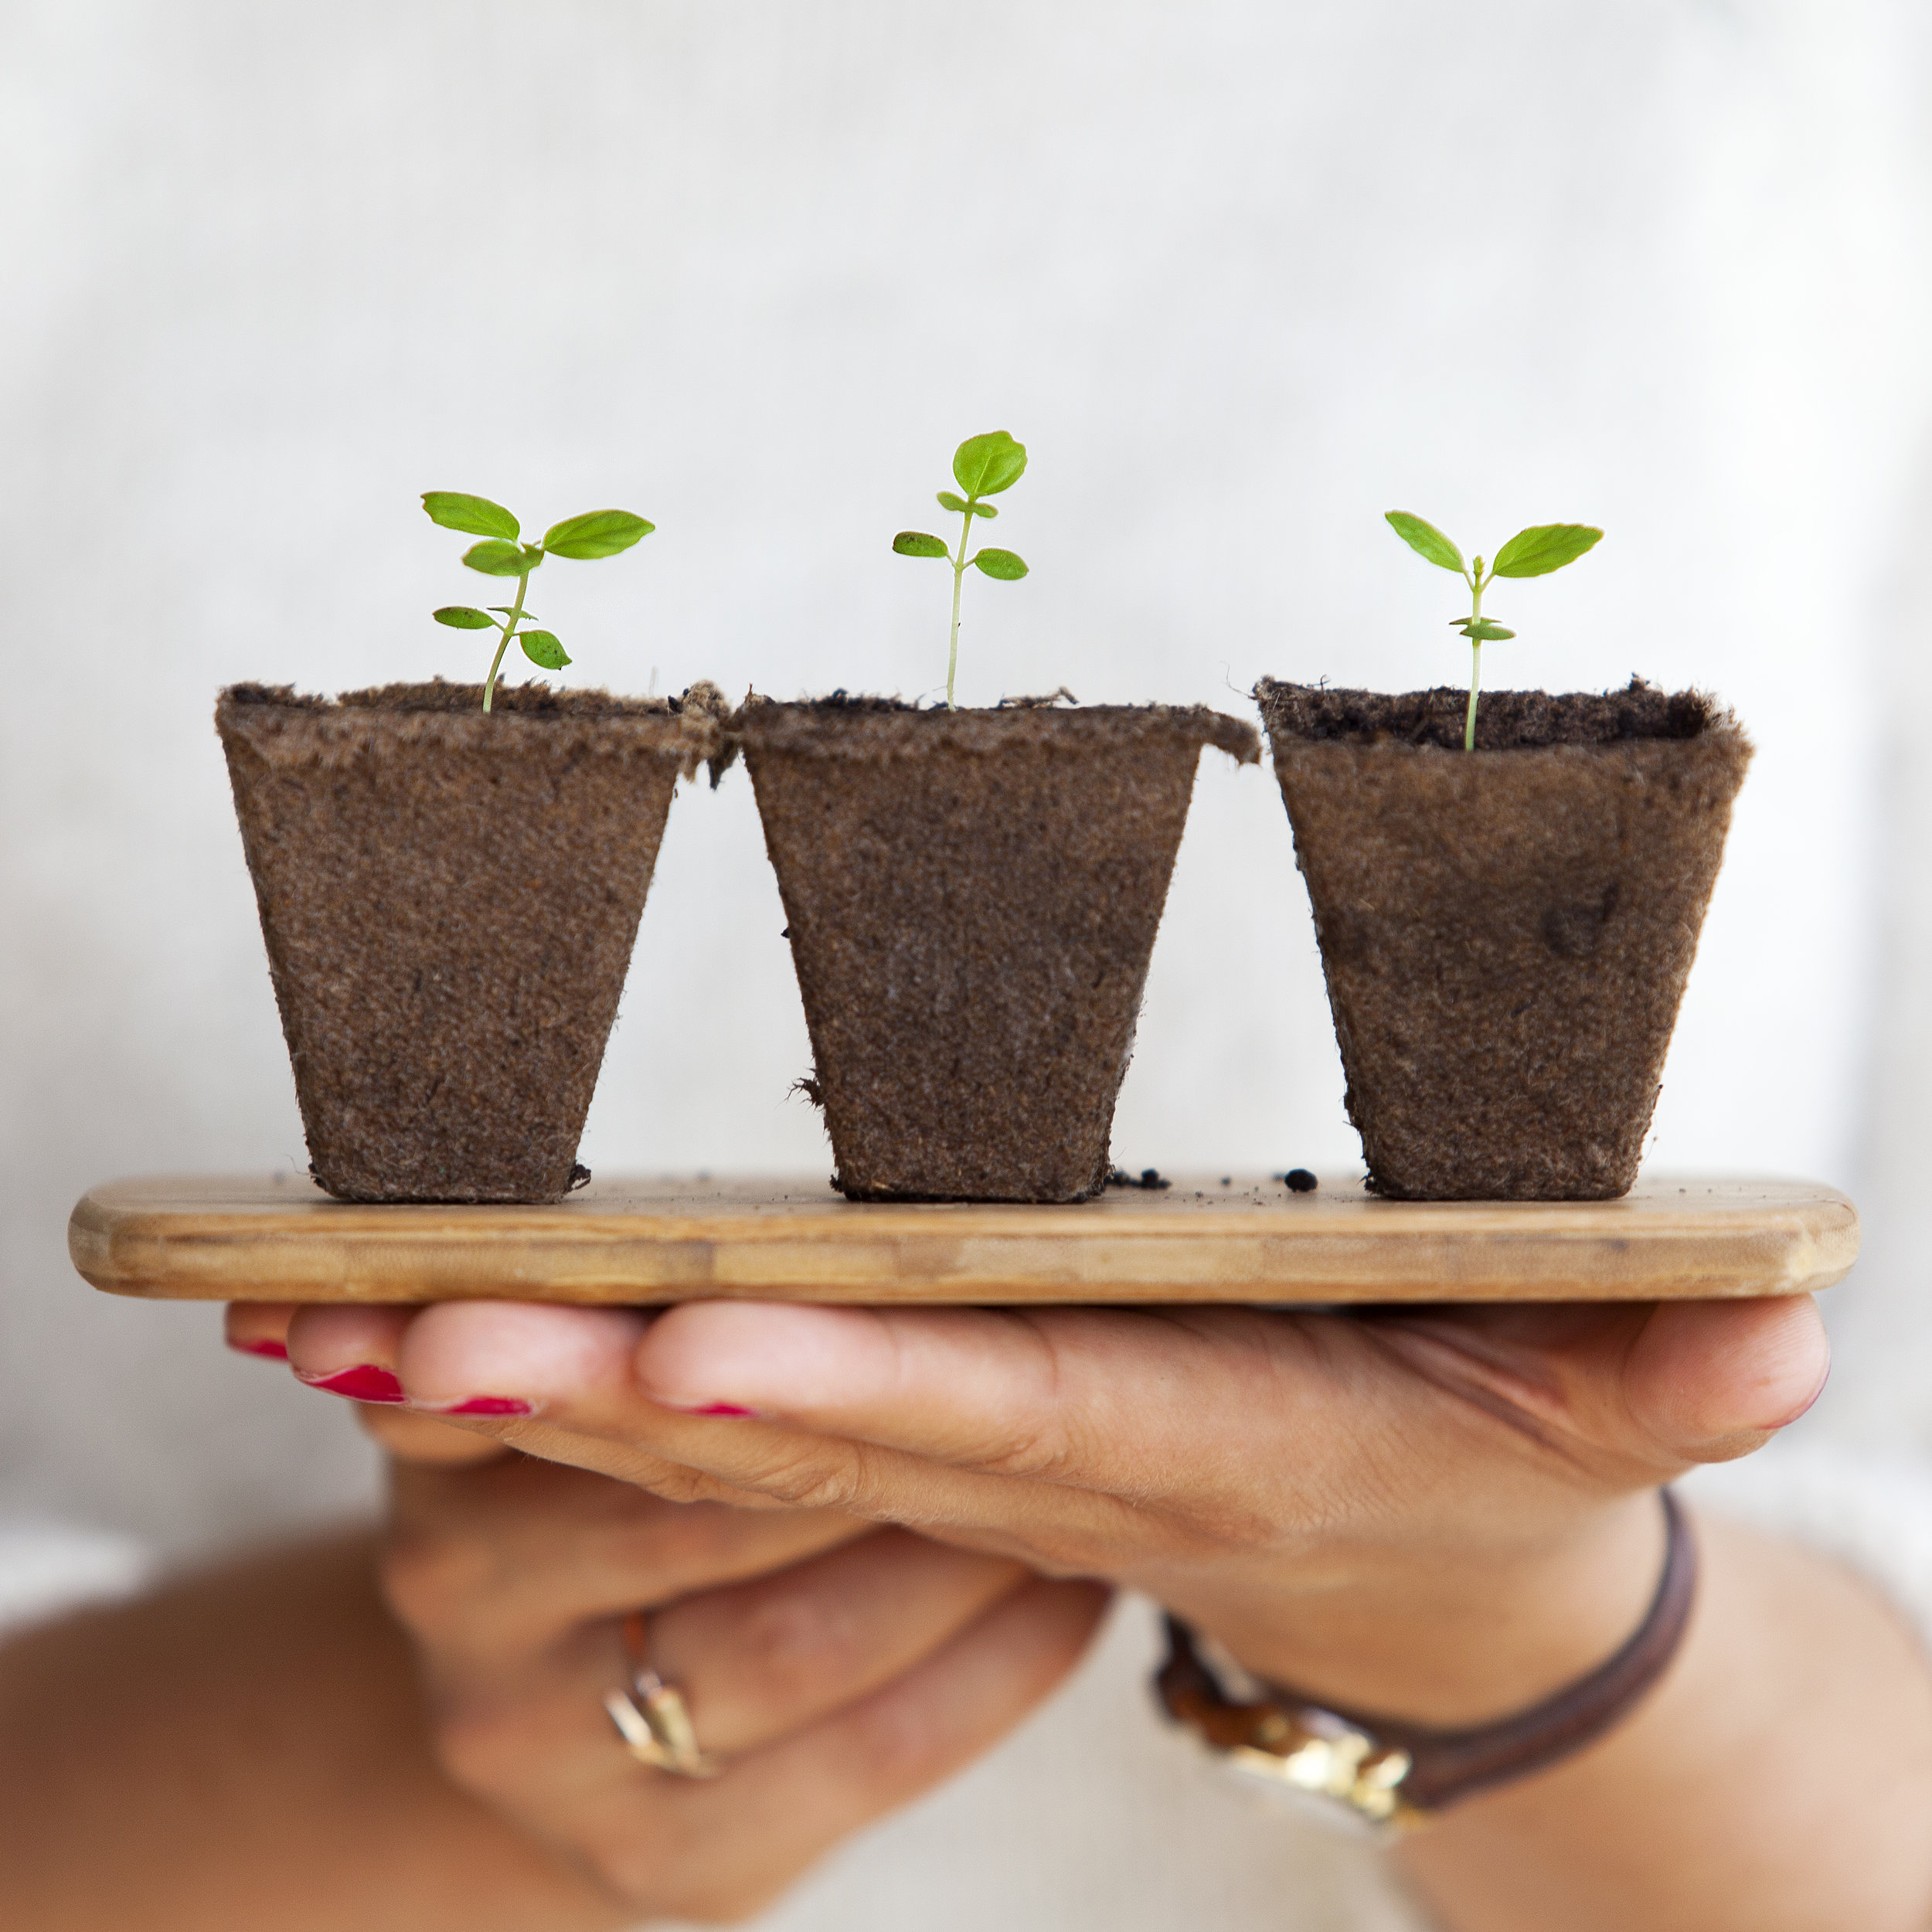 Hands holding three small potted plants.